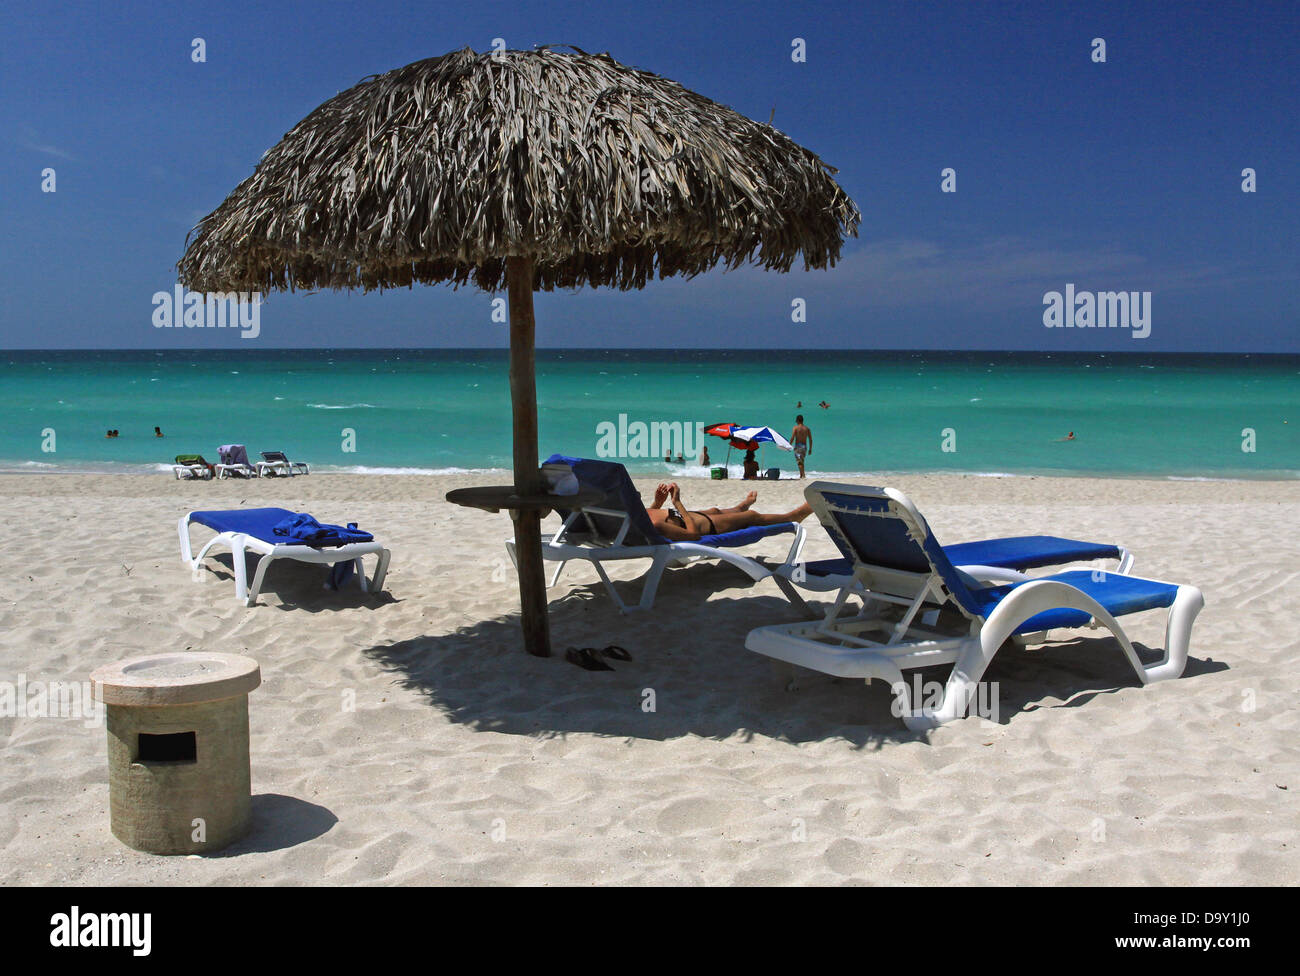 Best beach chair 2013 - Parasol With Beach Chairs On The Beach Of Varadero Cuba 19 April 2013 Photo Peter Zimmermann